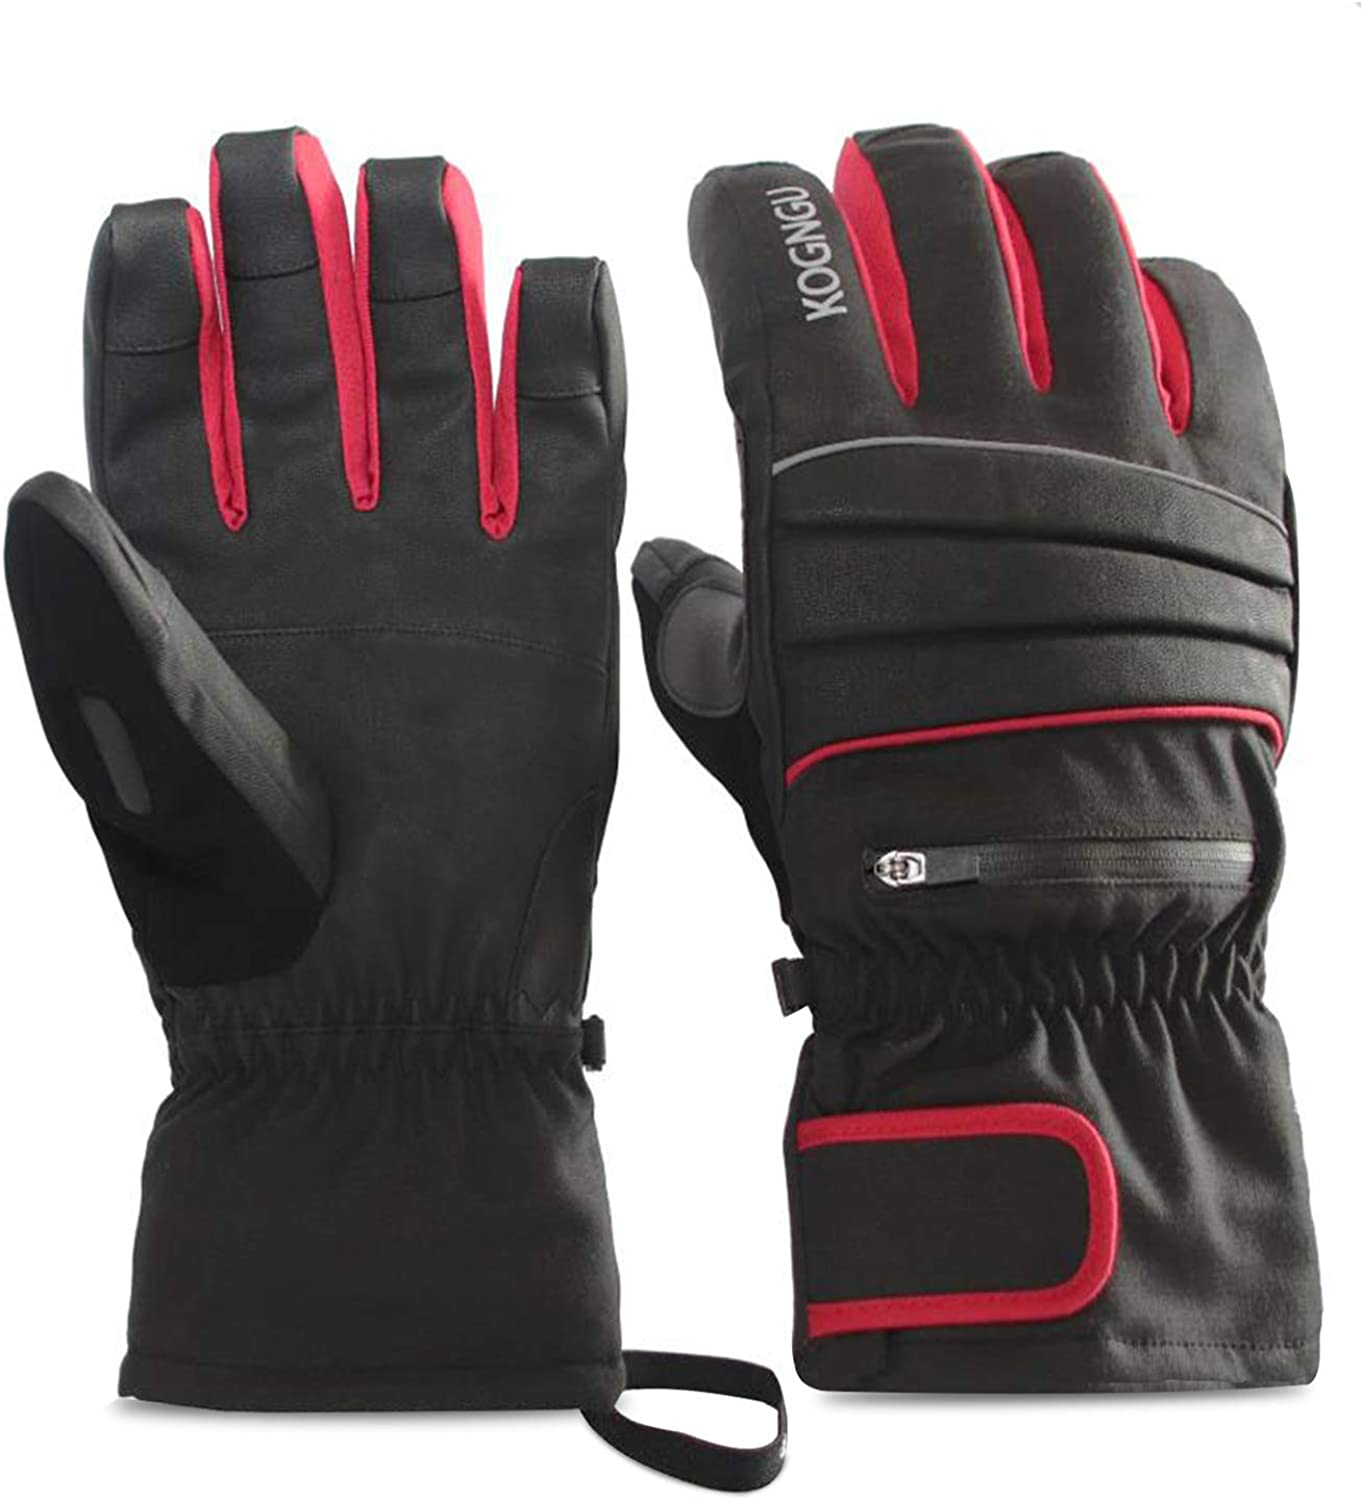 shop KOGNGU Ski Gloves Cheap mail order shopping Warm Waterproof fo 3M Cotton Thermal Insulated